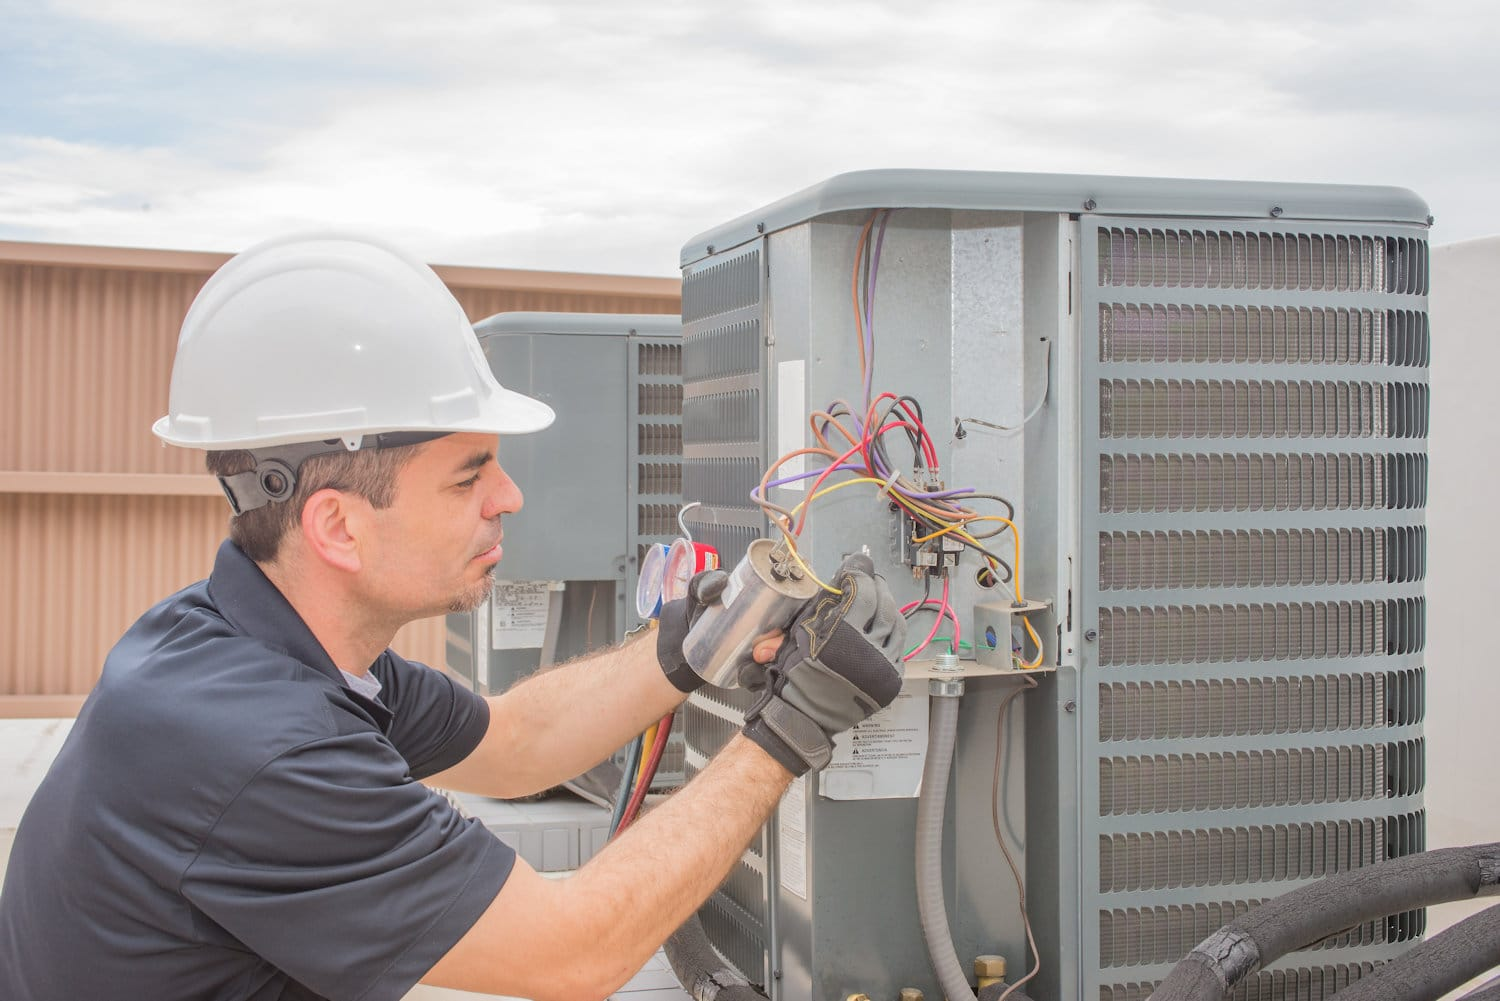 HVAC Repair Man Fixing AC - Find Contractors - Get Your Quote